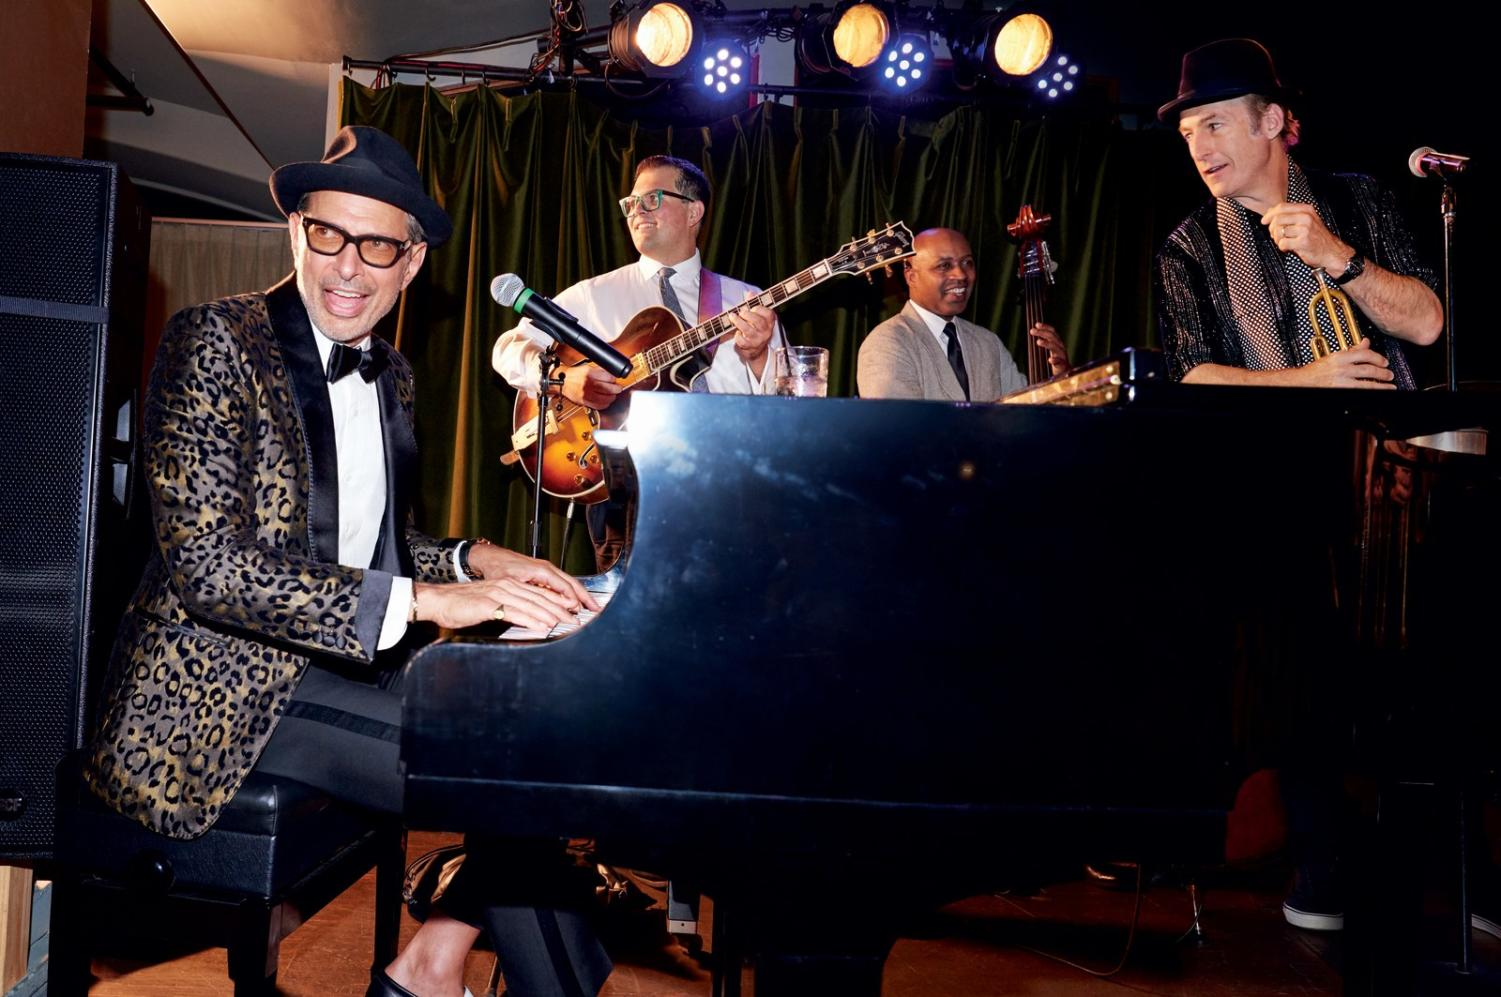 Jeff and the Mildred Snitzer Orchestra performing in LA.